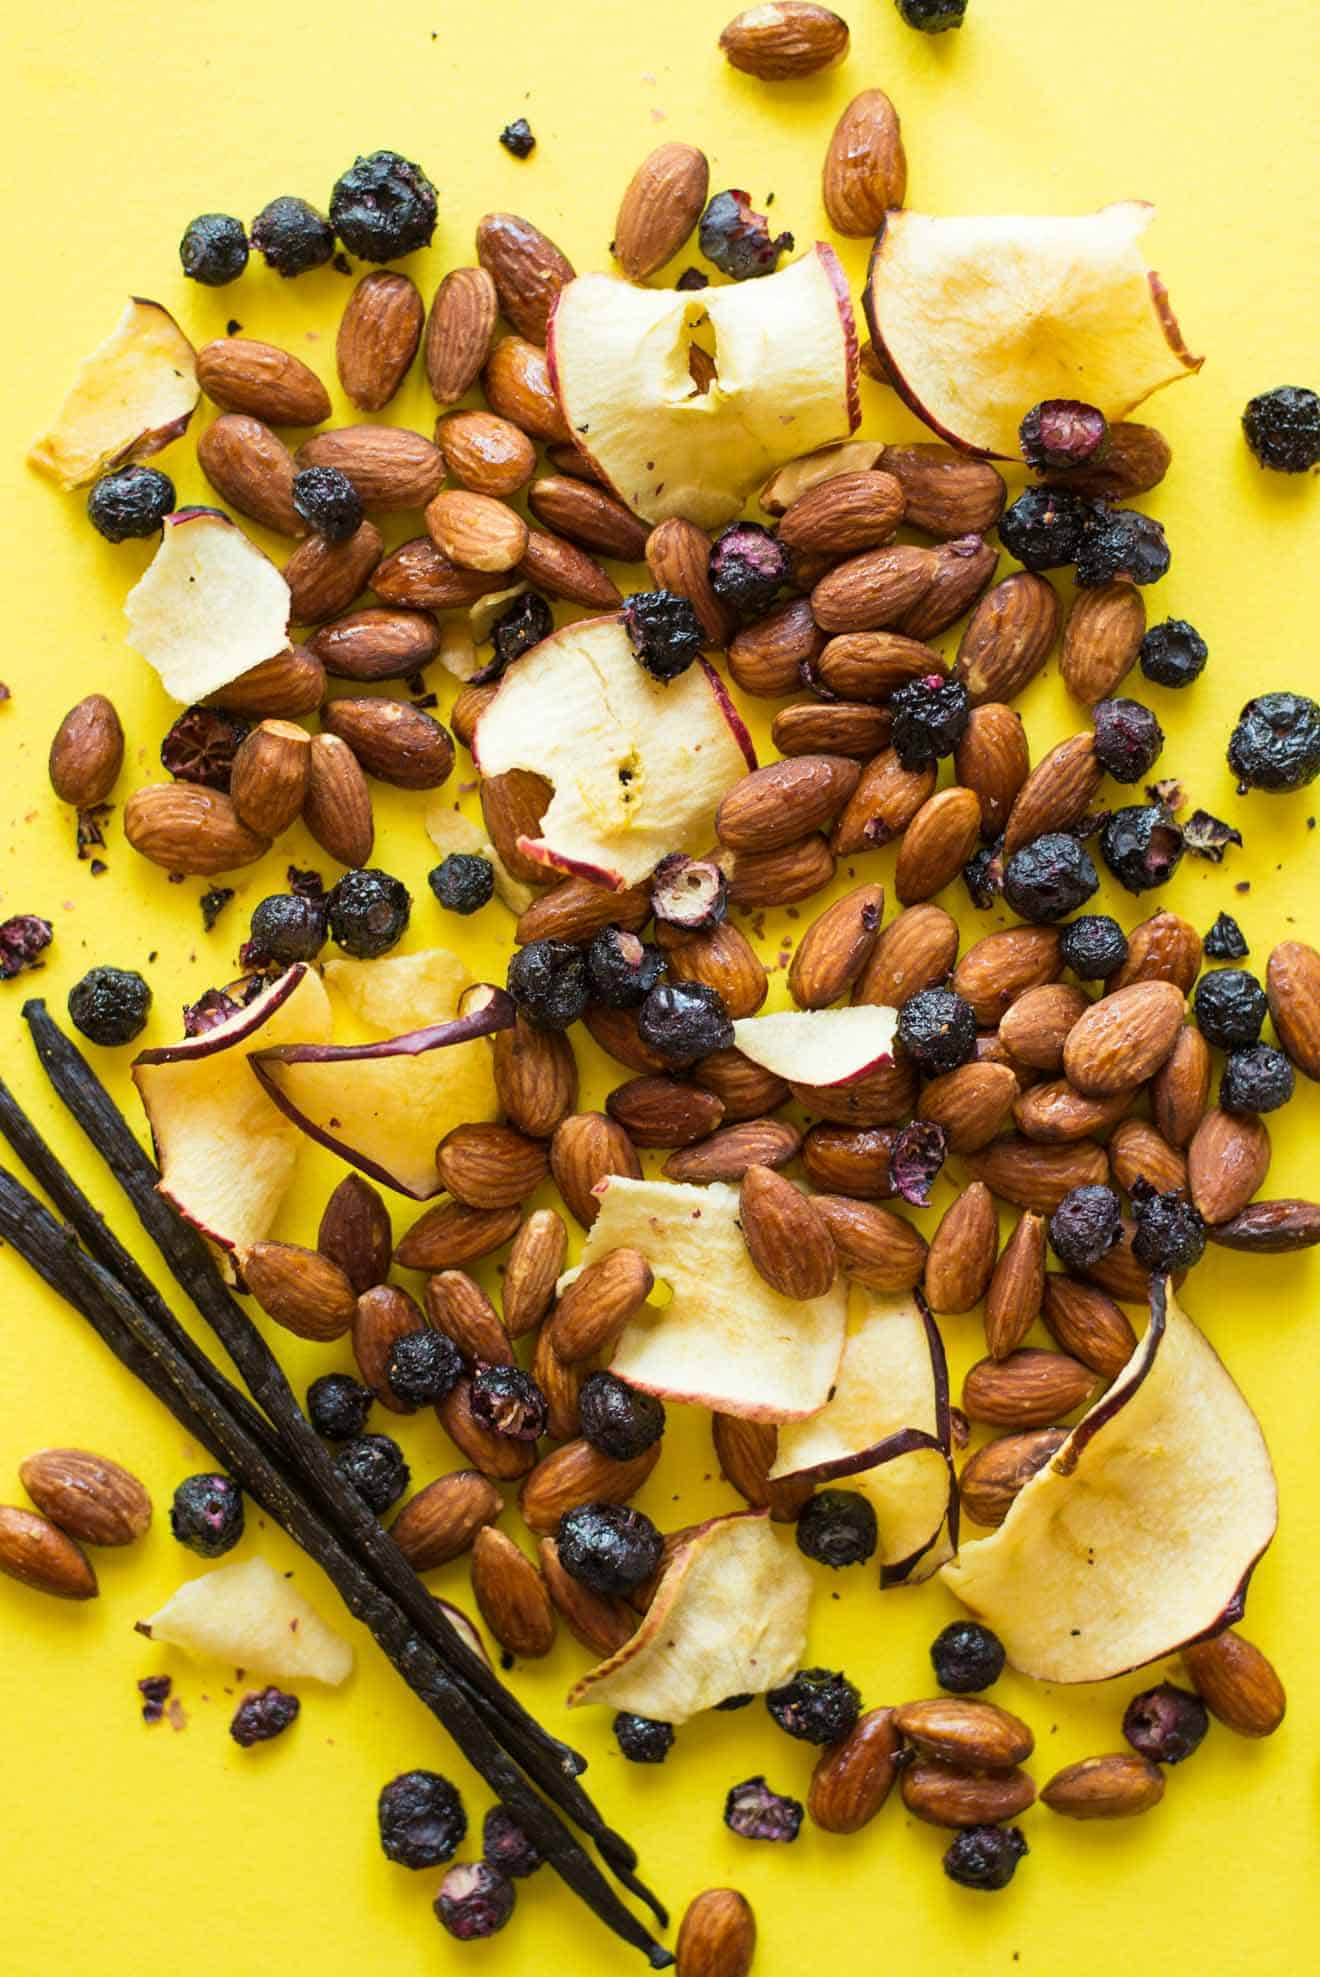 4 Easy Trail Mix Recipes with Almonds - here's 4 healthy snacks that you can make at home! They're gluten free and take only 30 minutes to prepare! by @healthynibs